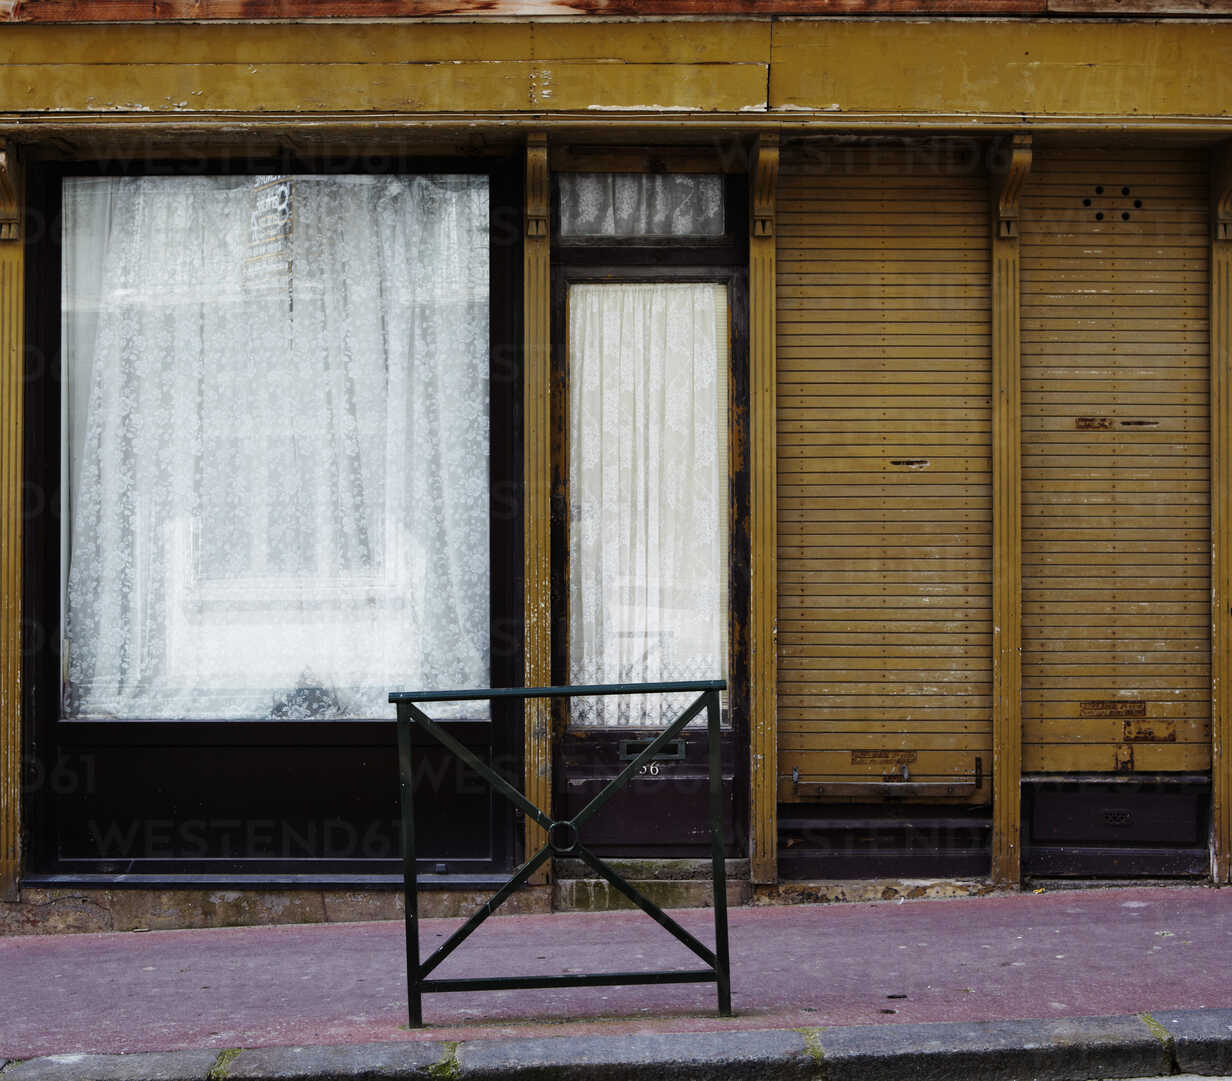 France, Normandy, Deauville, Abandoned shop window - TLF000720 - Tanja Luther/Westend61